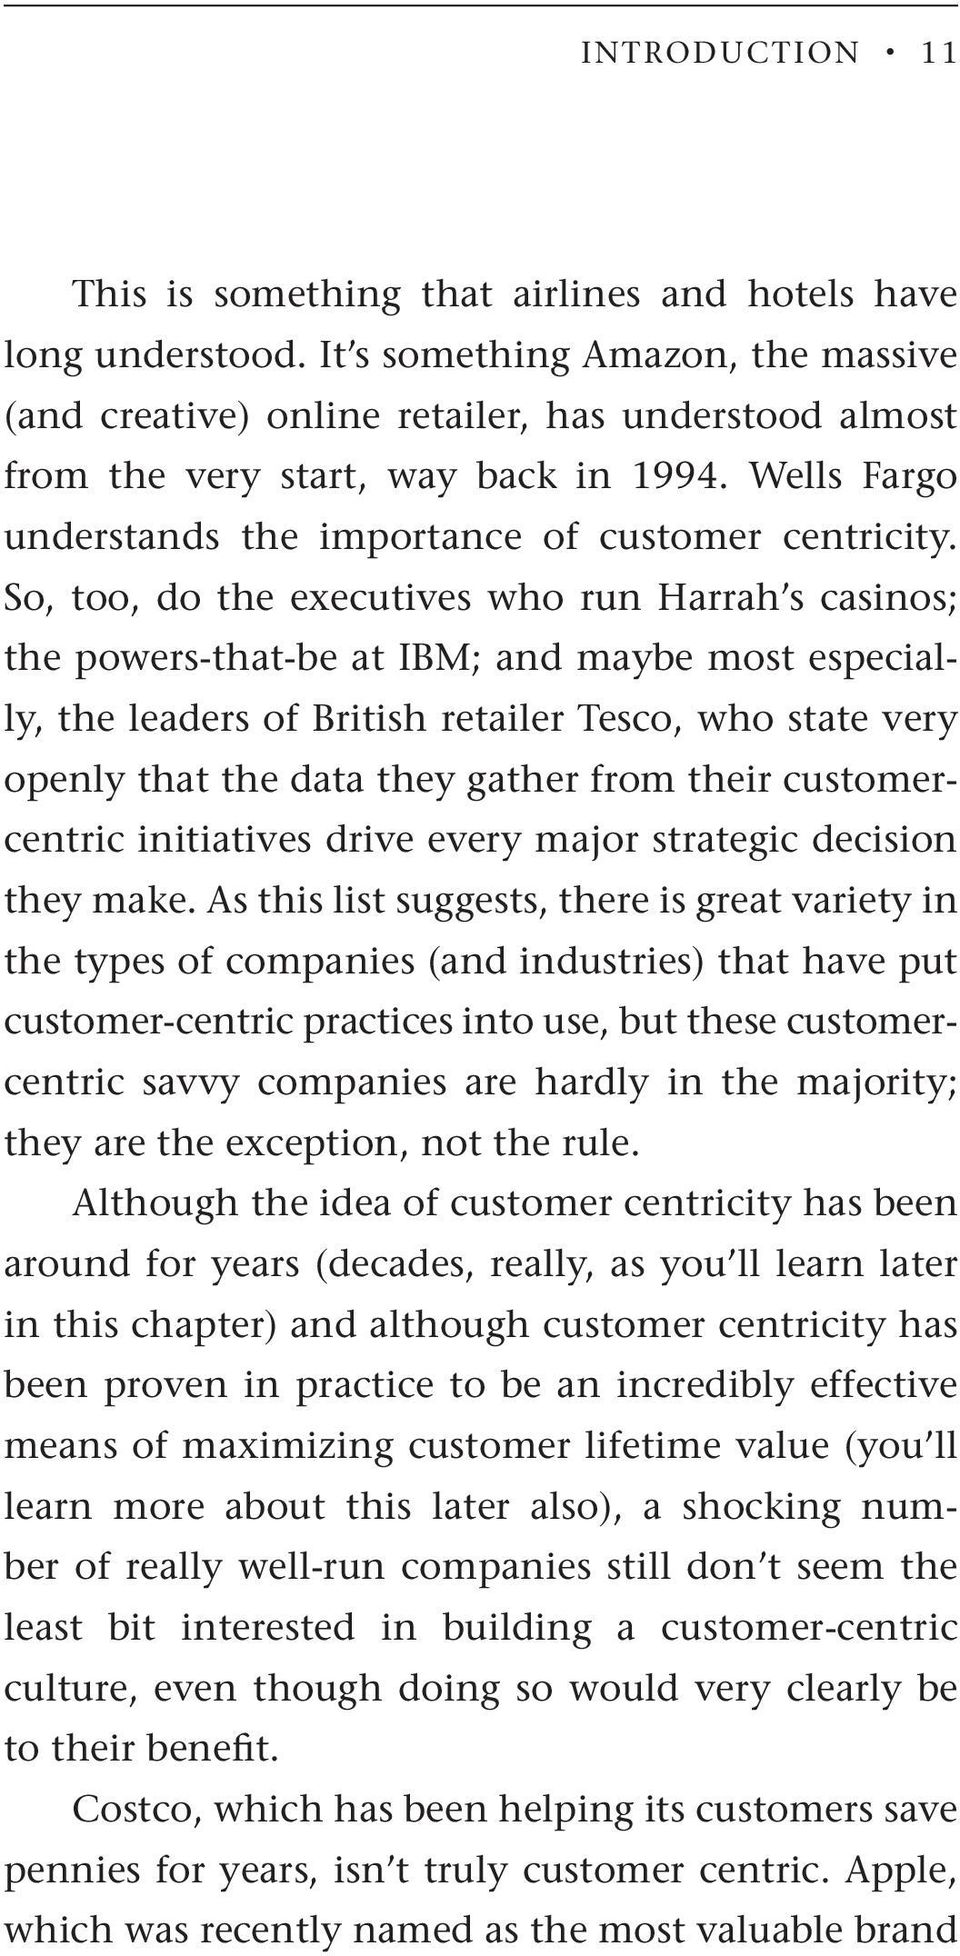 So, too, do the executives who run Harrah s casinos; the powers-that-be at IBM; and maybe most especially, the leaders of British retailer Tesco, who state very openly that the data they gather from